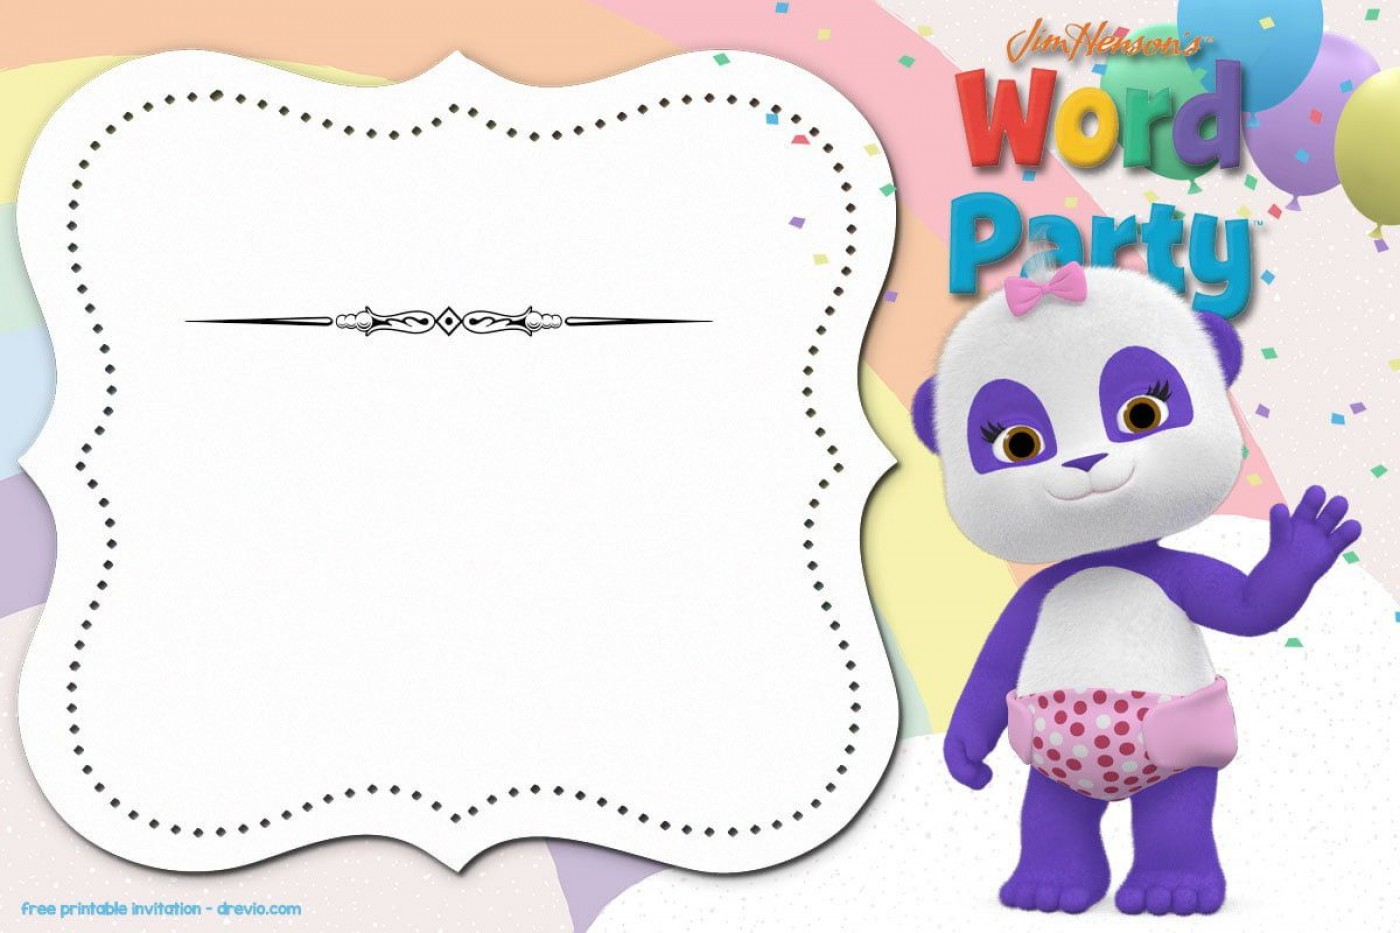 006 Stunning Free Birthday Party Invitation Template For Word High Definition 1400